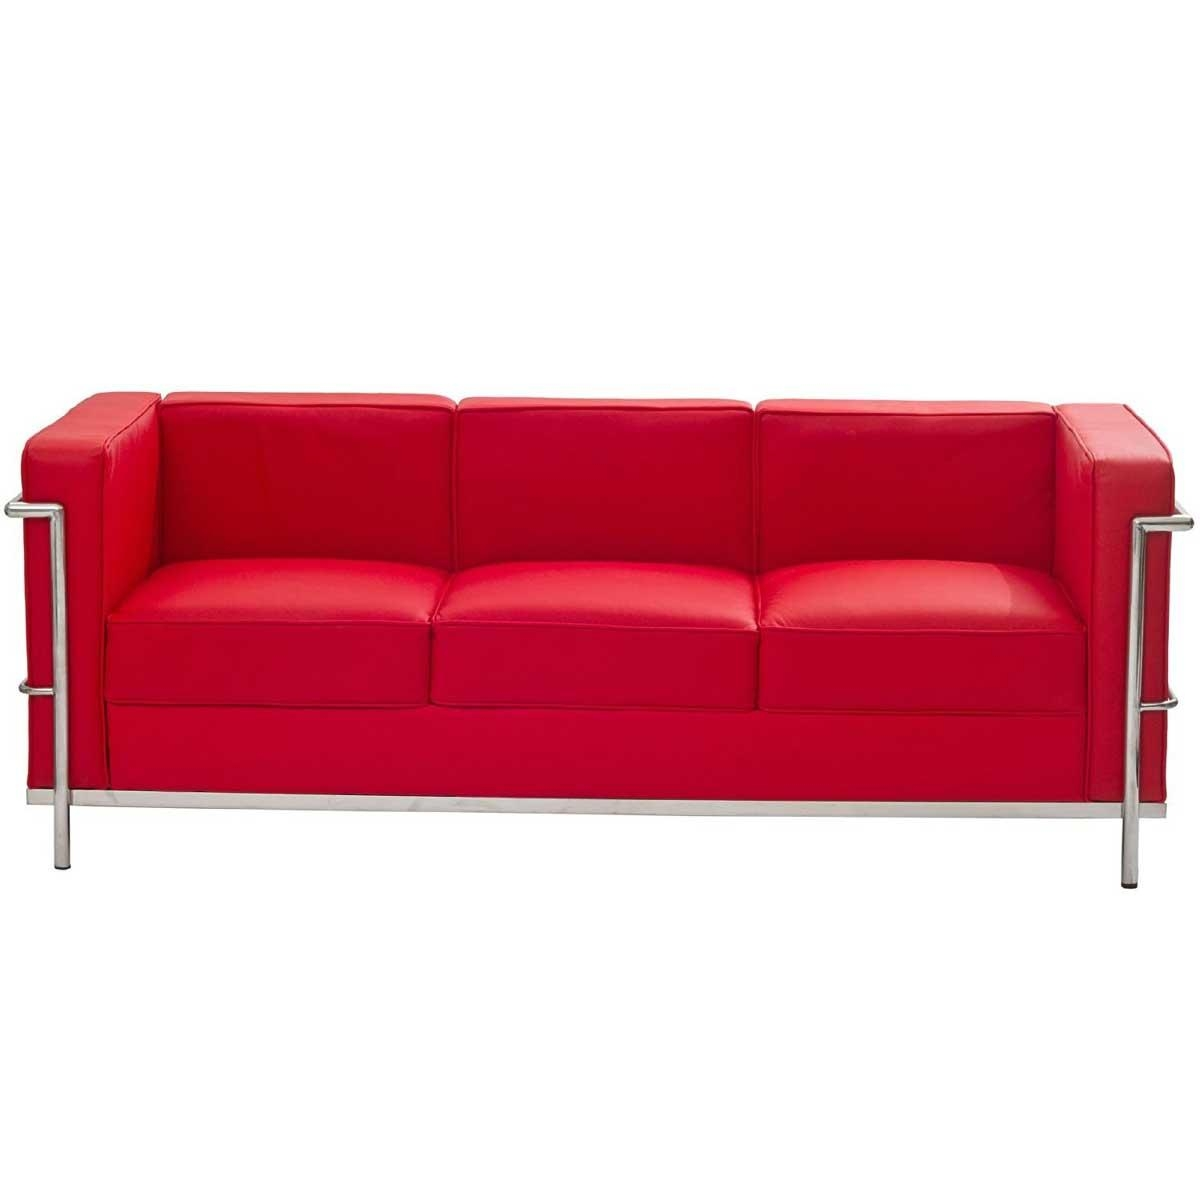 Latest Red Leather Sofas For Sale #4386 In Sofas With Chrome Legs (Image 11 of 20)